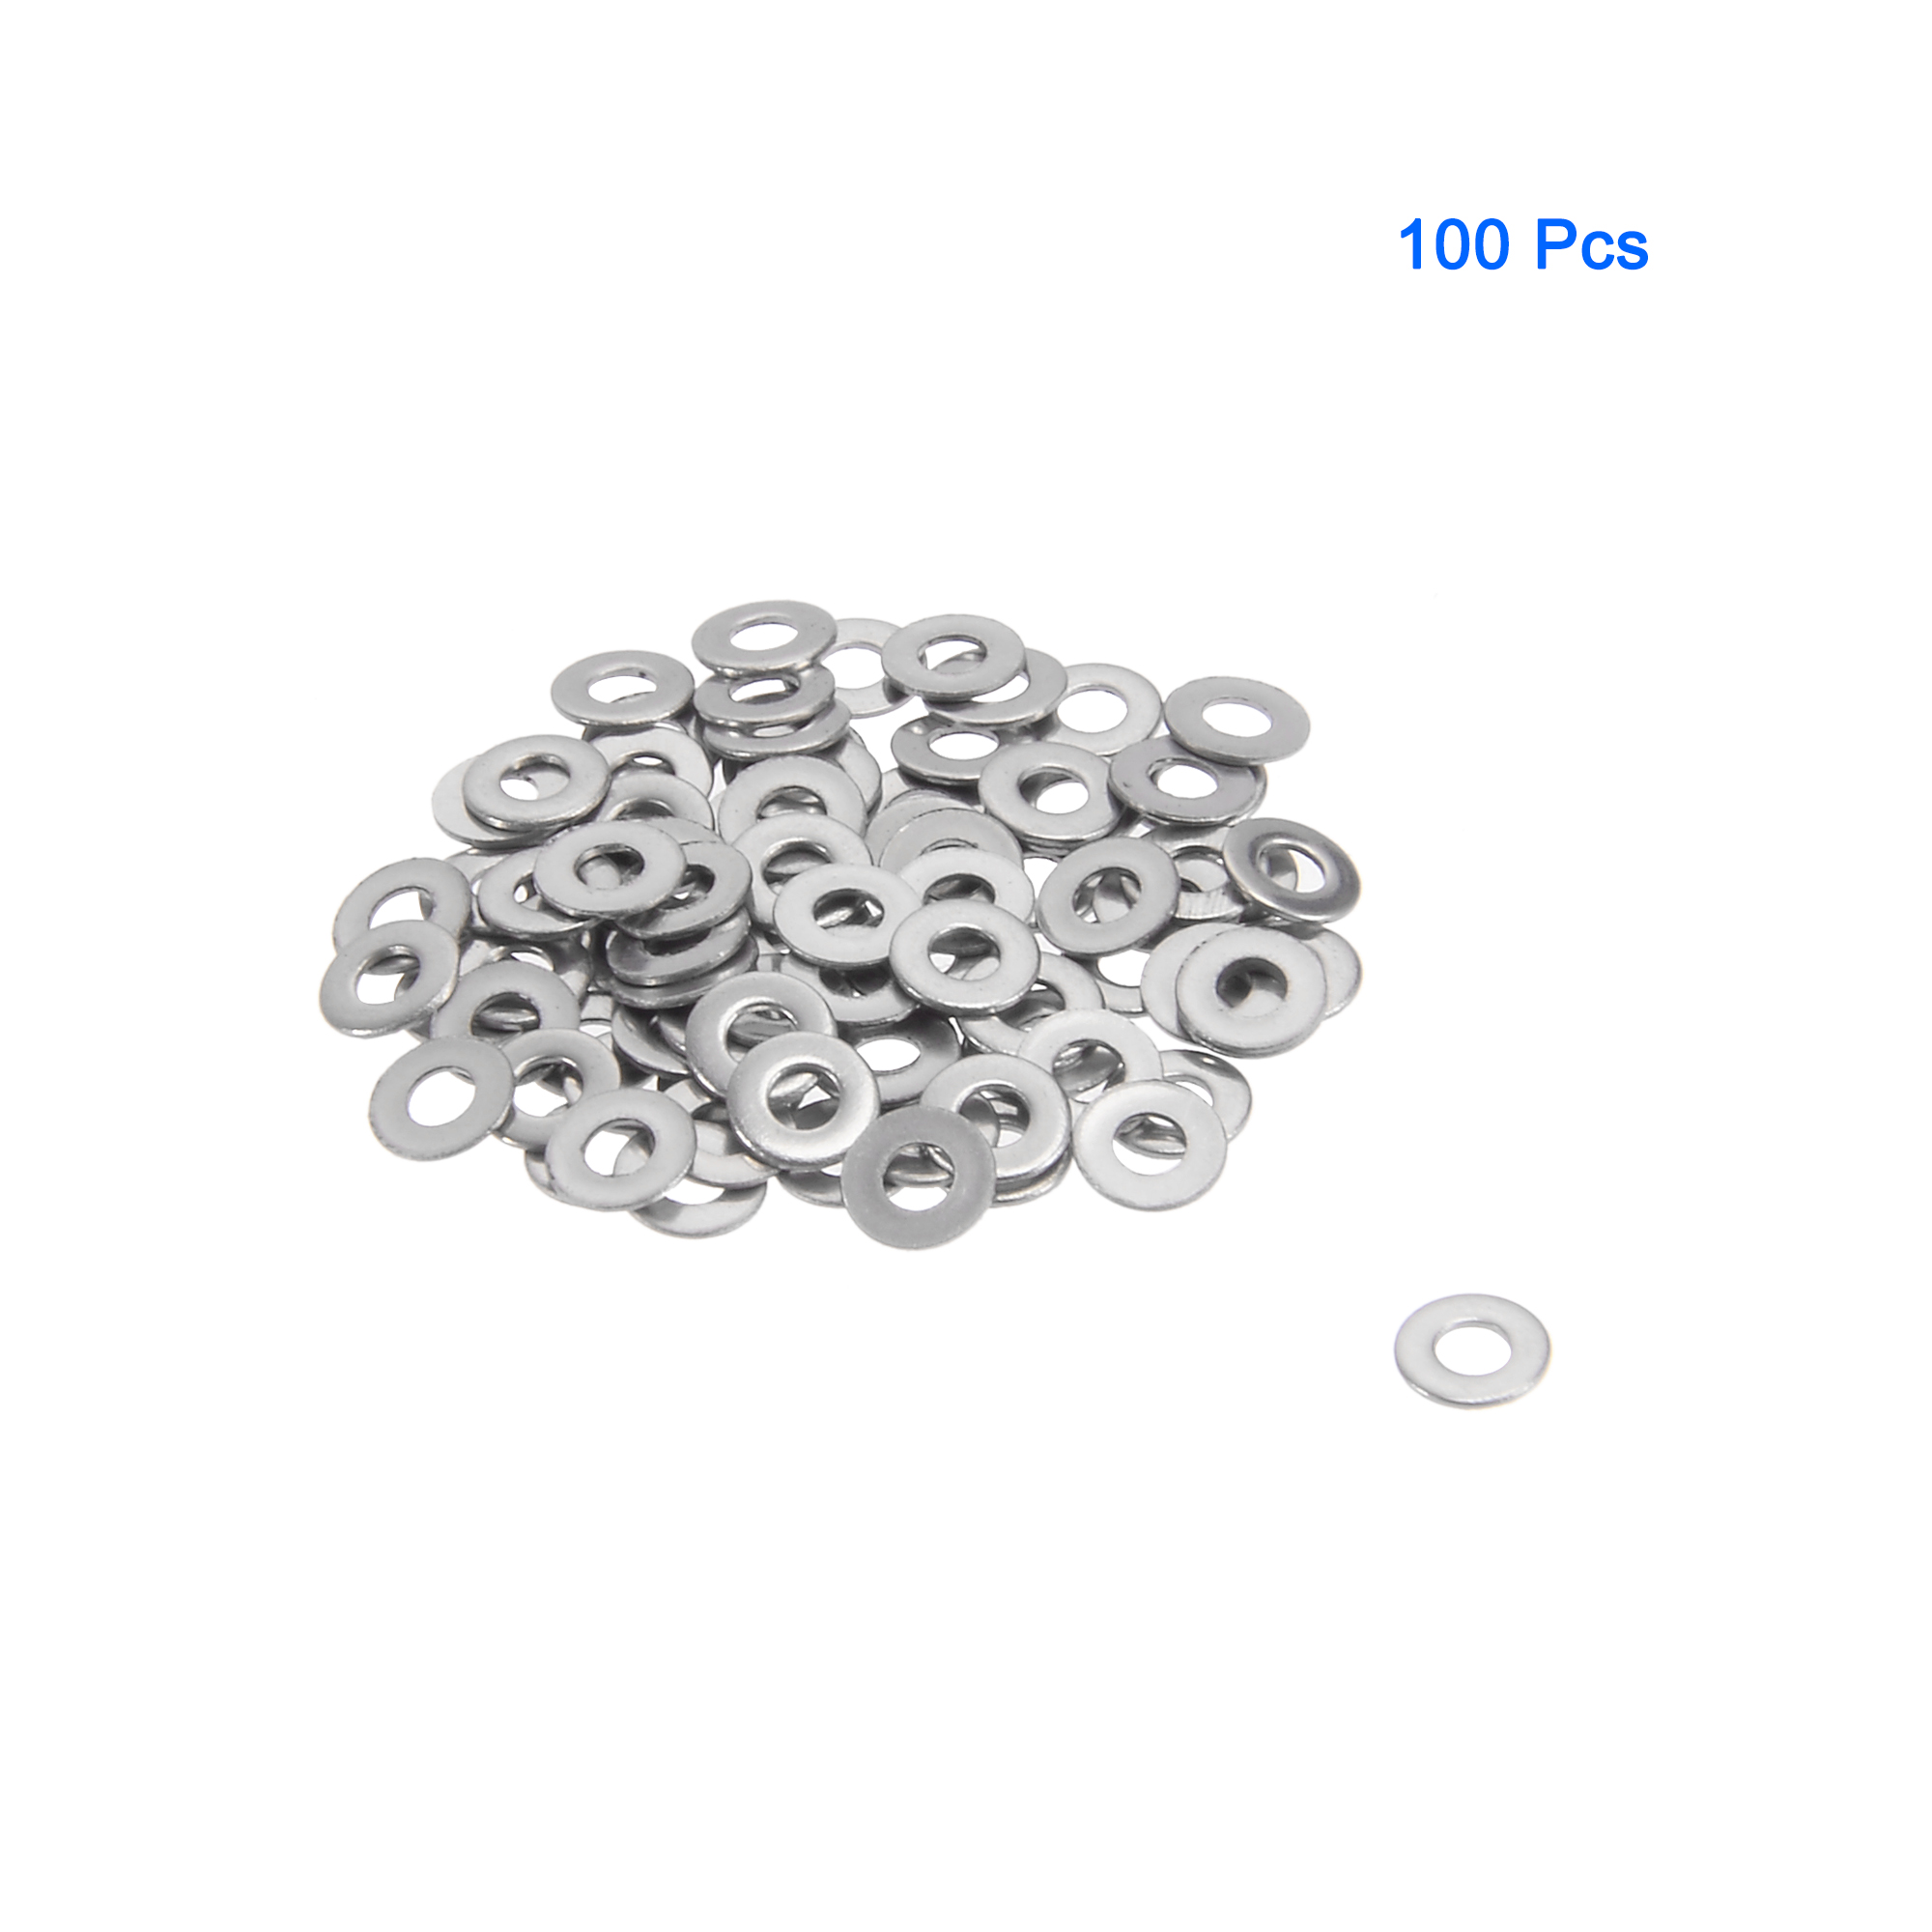 100Pcs M1.6x4mmx0.3mm Stainless Steel Metric Round Flat Washer for Bolt Screw